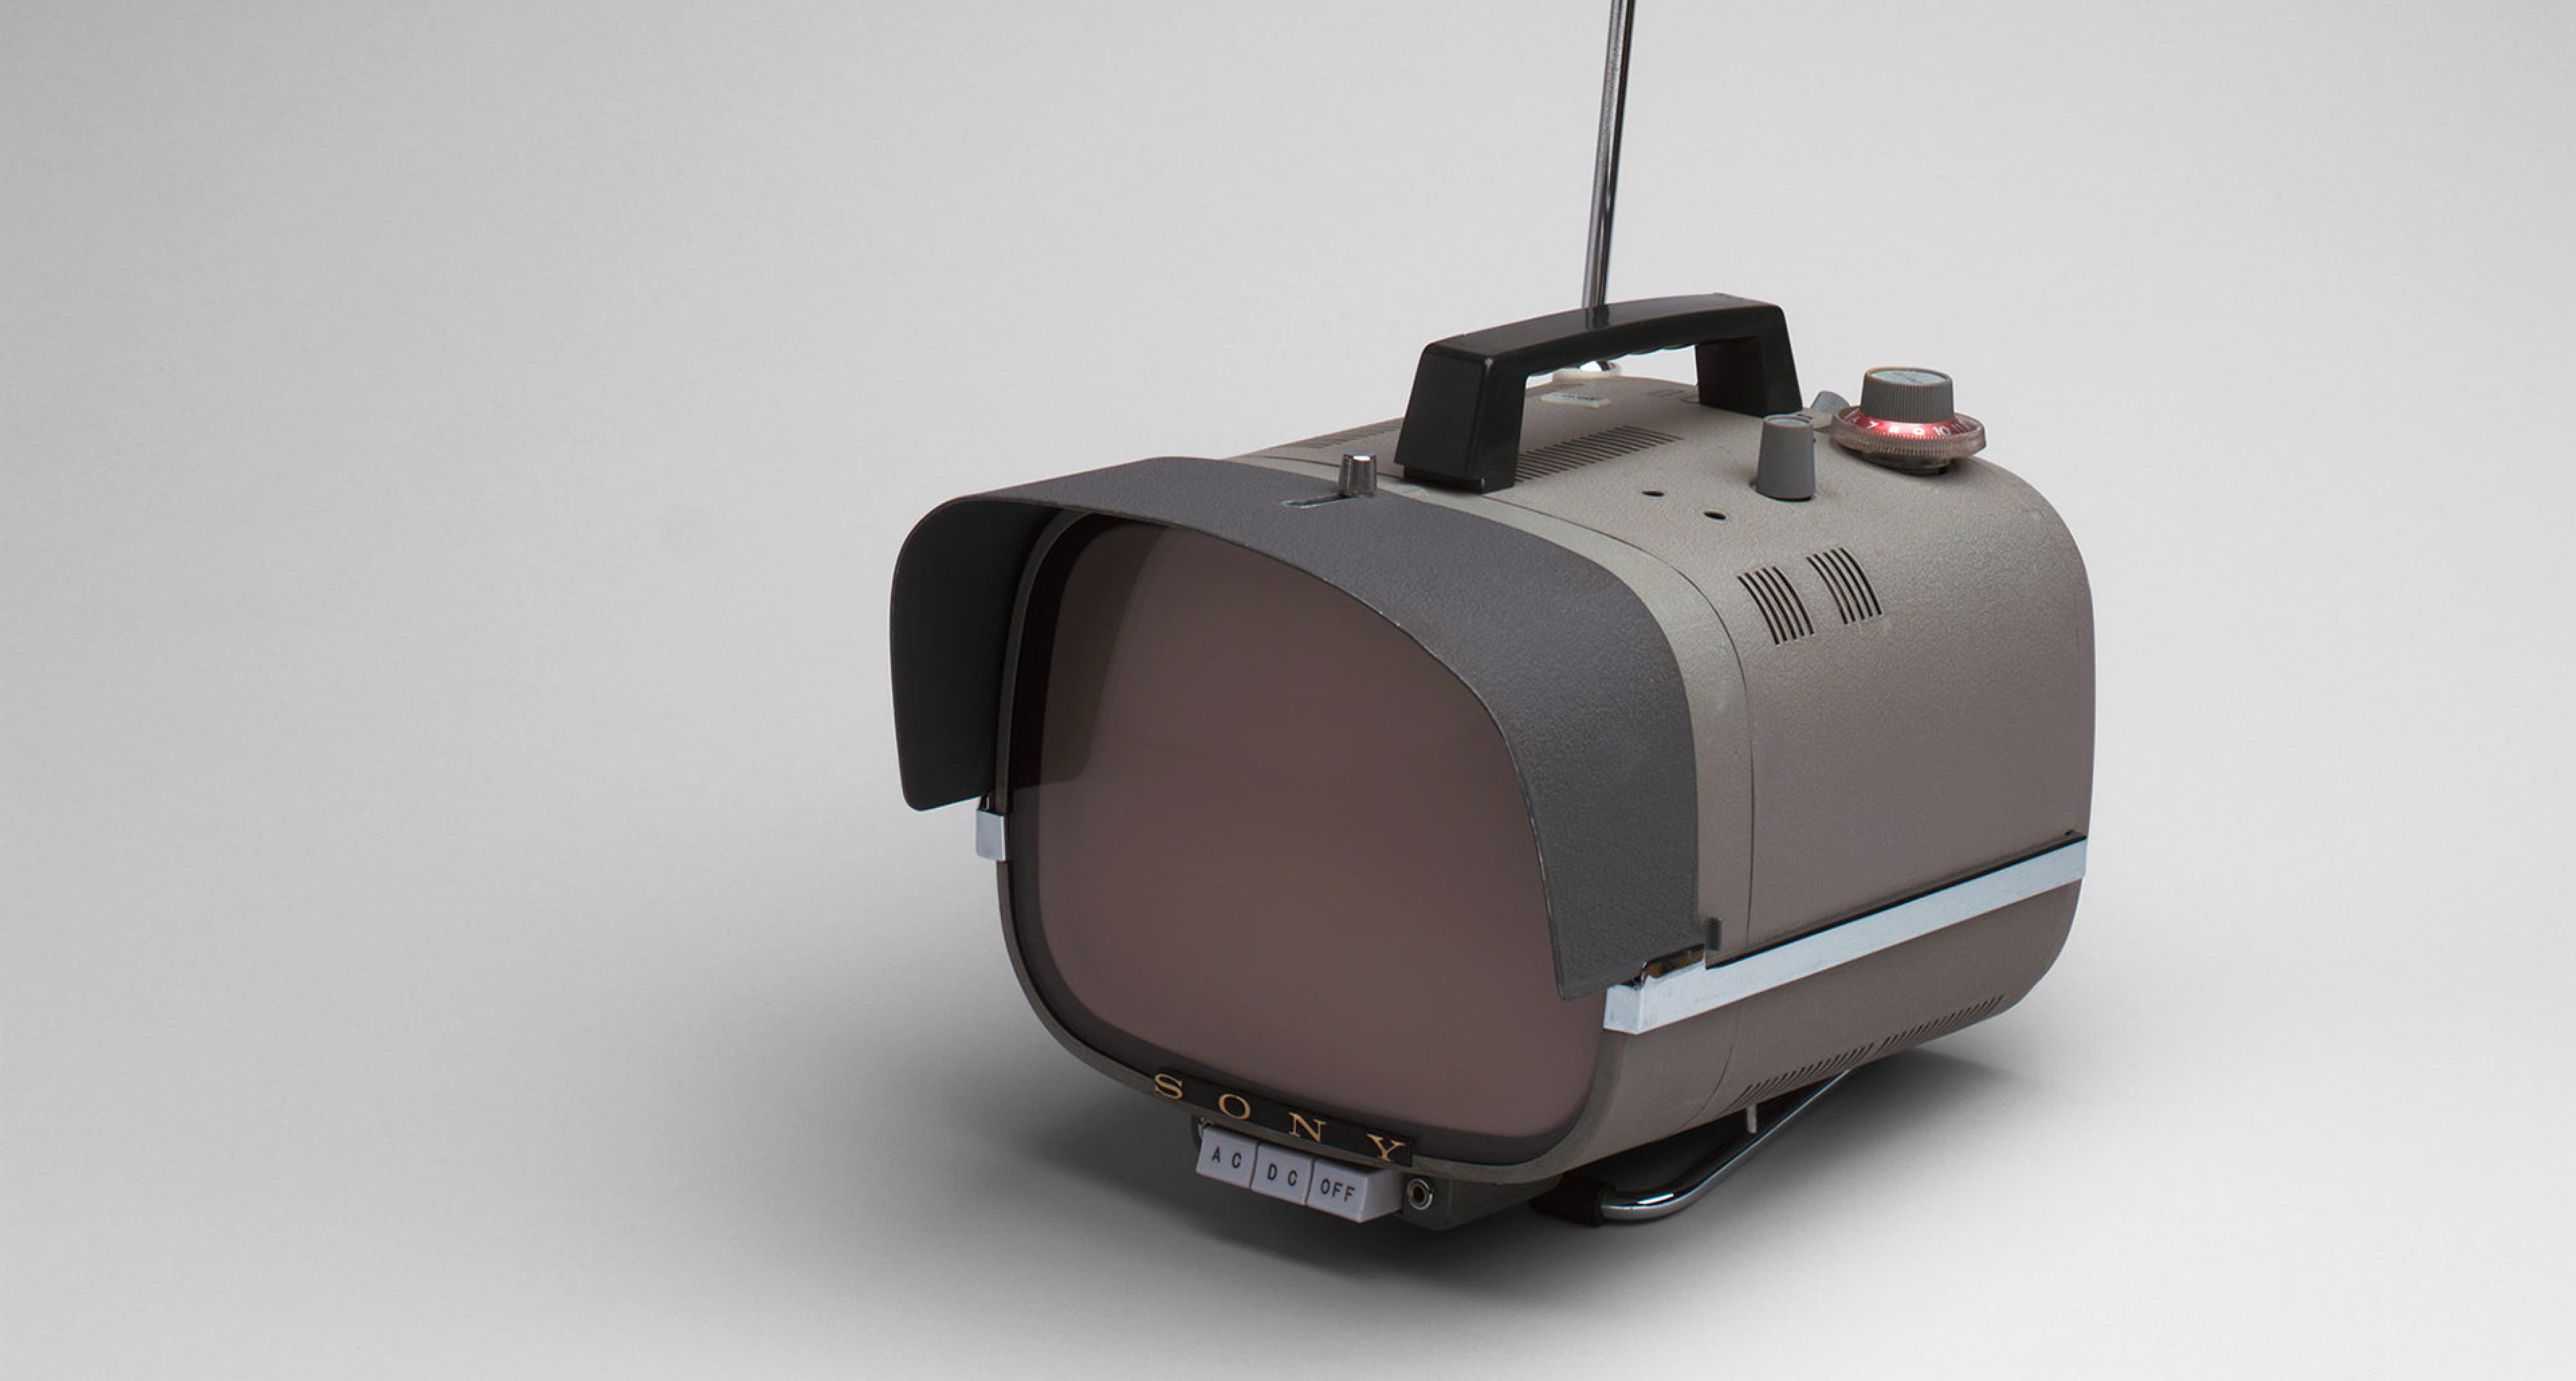 Sony Corporation (Tokyo, Japan, est. 1946). Television (TX8-301). 1959. Plastic, metal, and glass, 8 1/2 × 8 1/4 × 10″ (21.6 × 21 × 25.4 cm). The Museum of Modern Art, New York. Gift of Jo Carole and Ronald S. Lauder